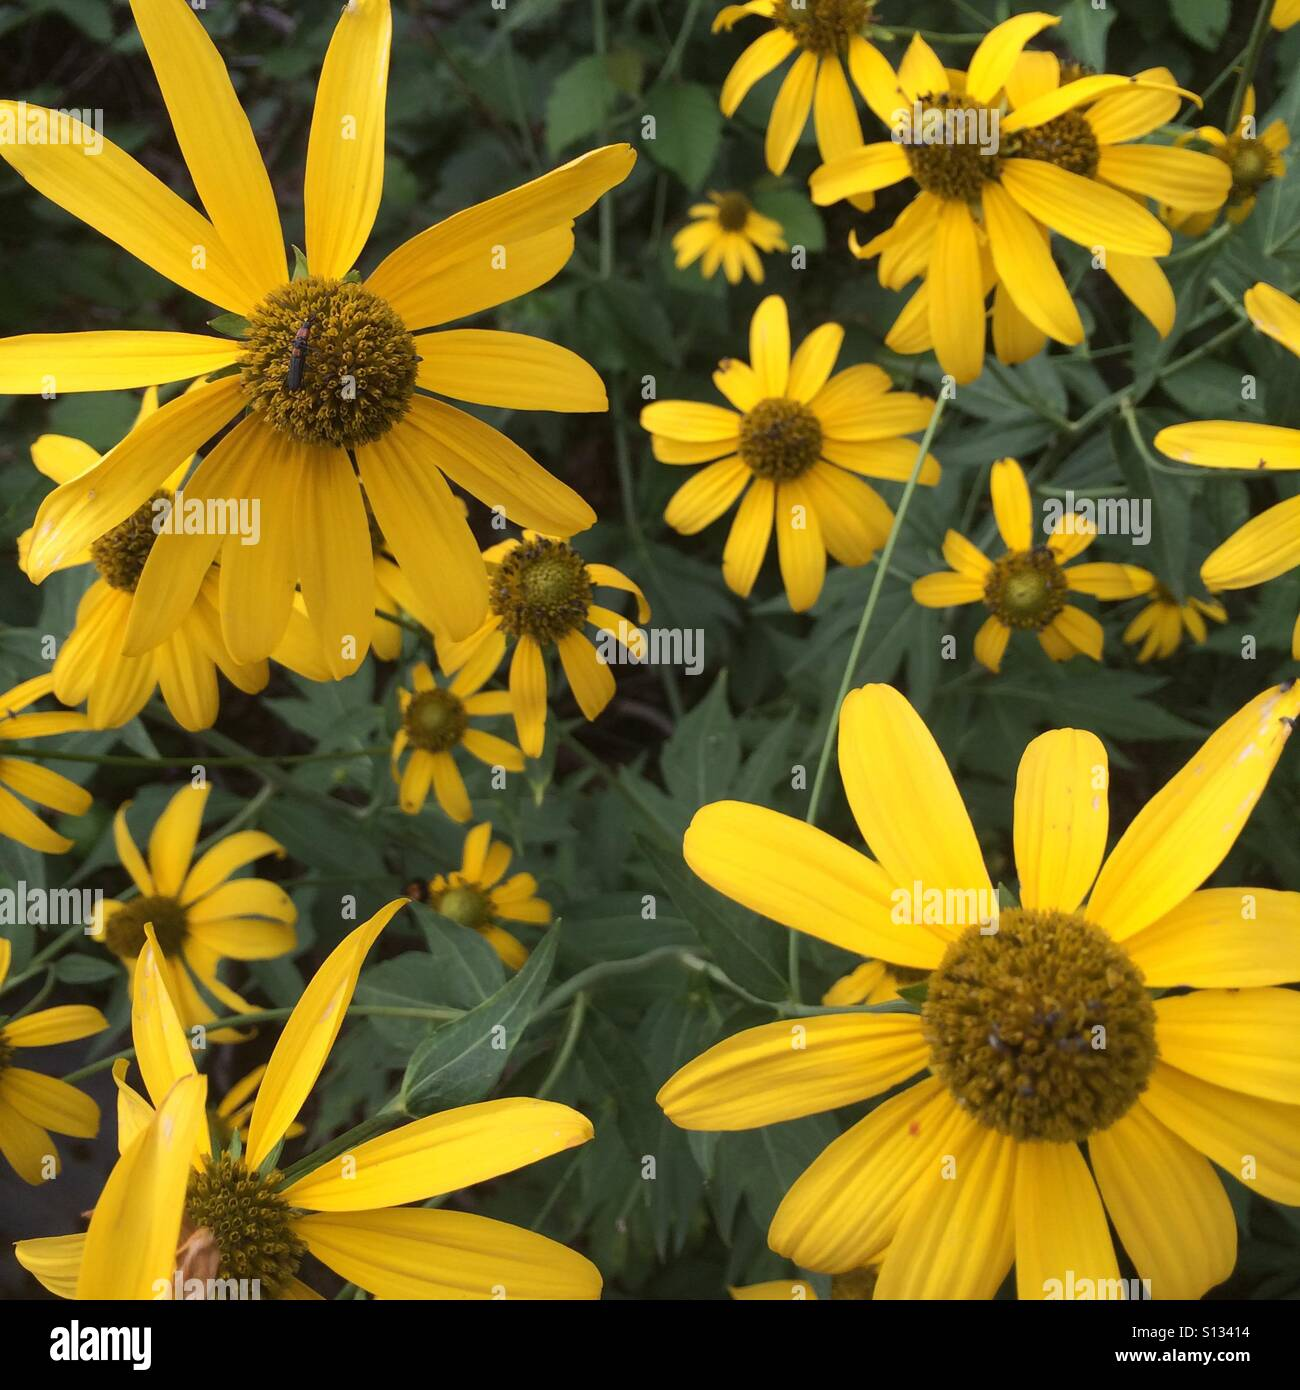 A group of wildflowers on the forest floor. The wildflowers are called Cutleaf Coneflowers. They are also known - Stock Image